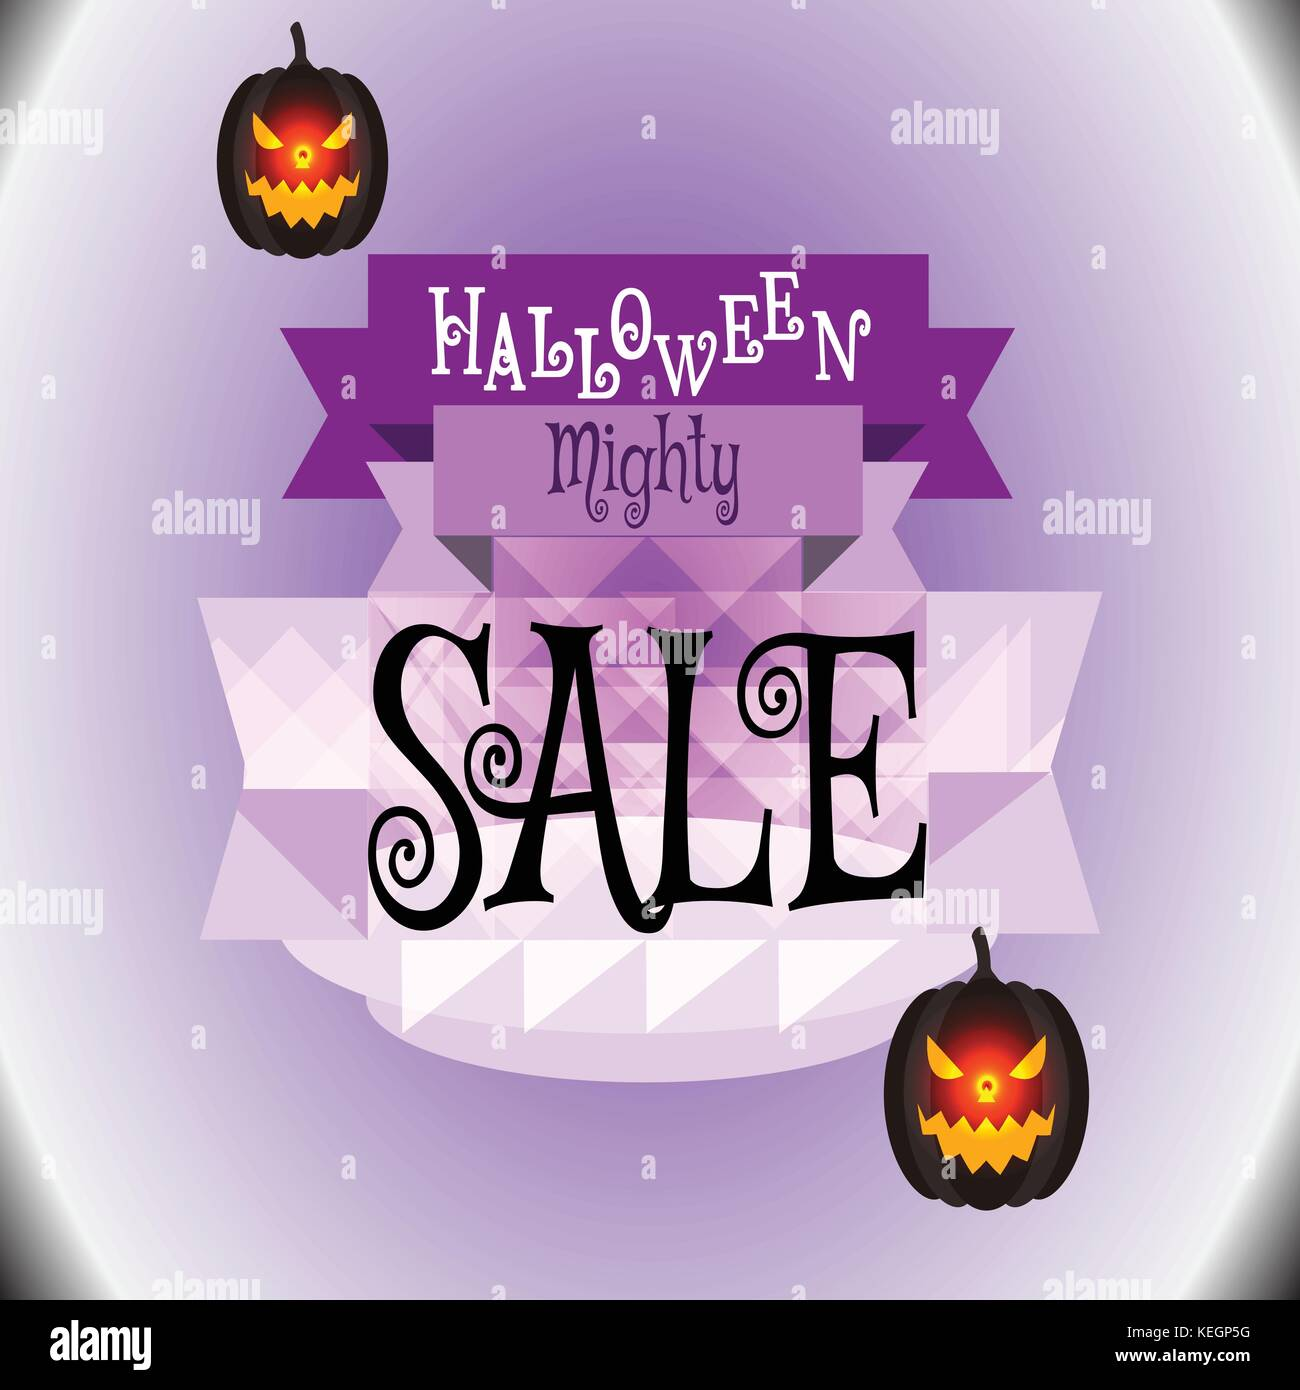 Halloween Sale Vector for background,backdrop,posters,printing,wallpaper,illustration or other kinds of media presentation. - Stock Image